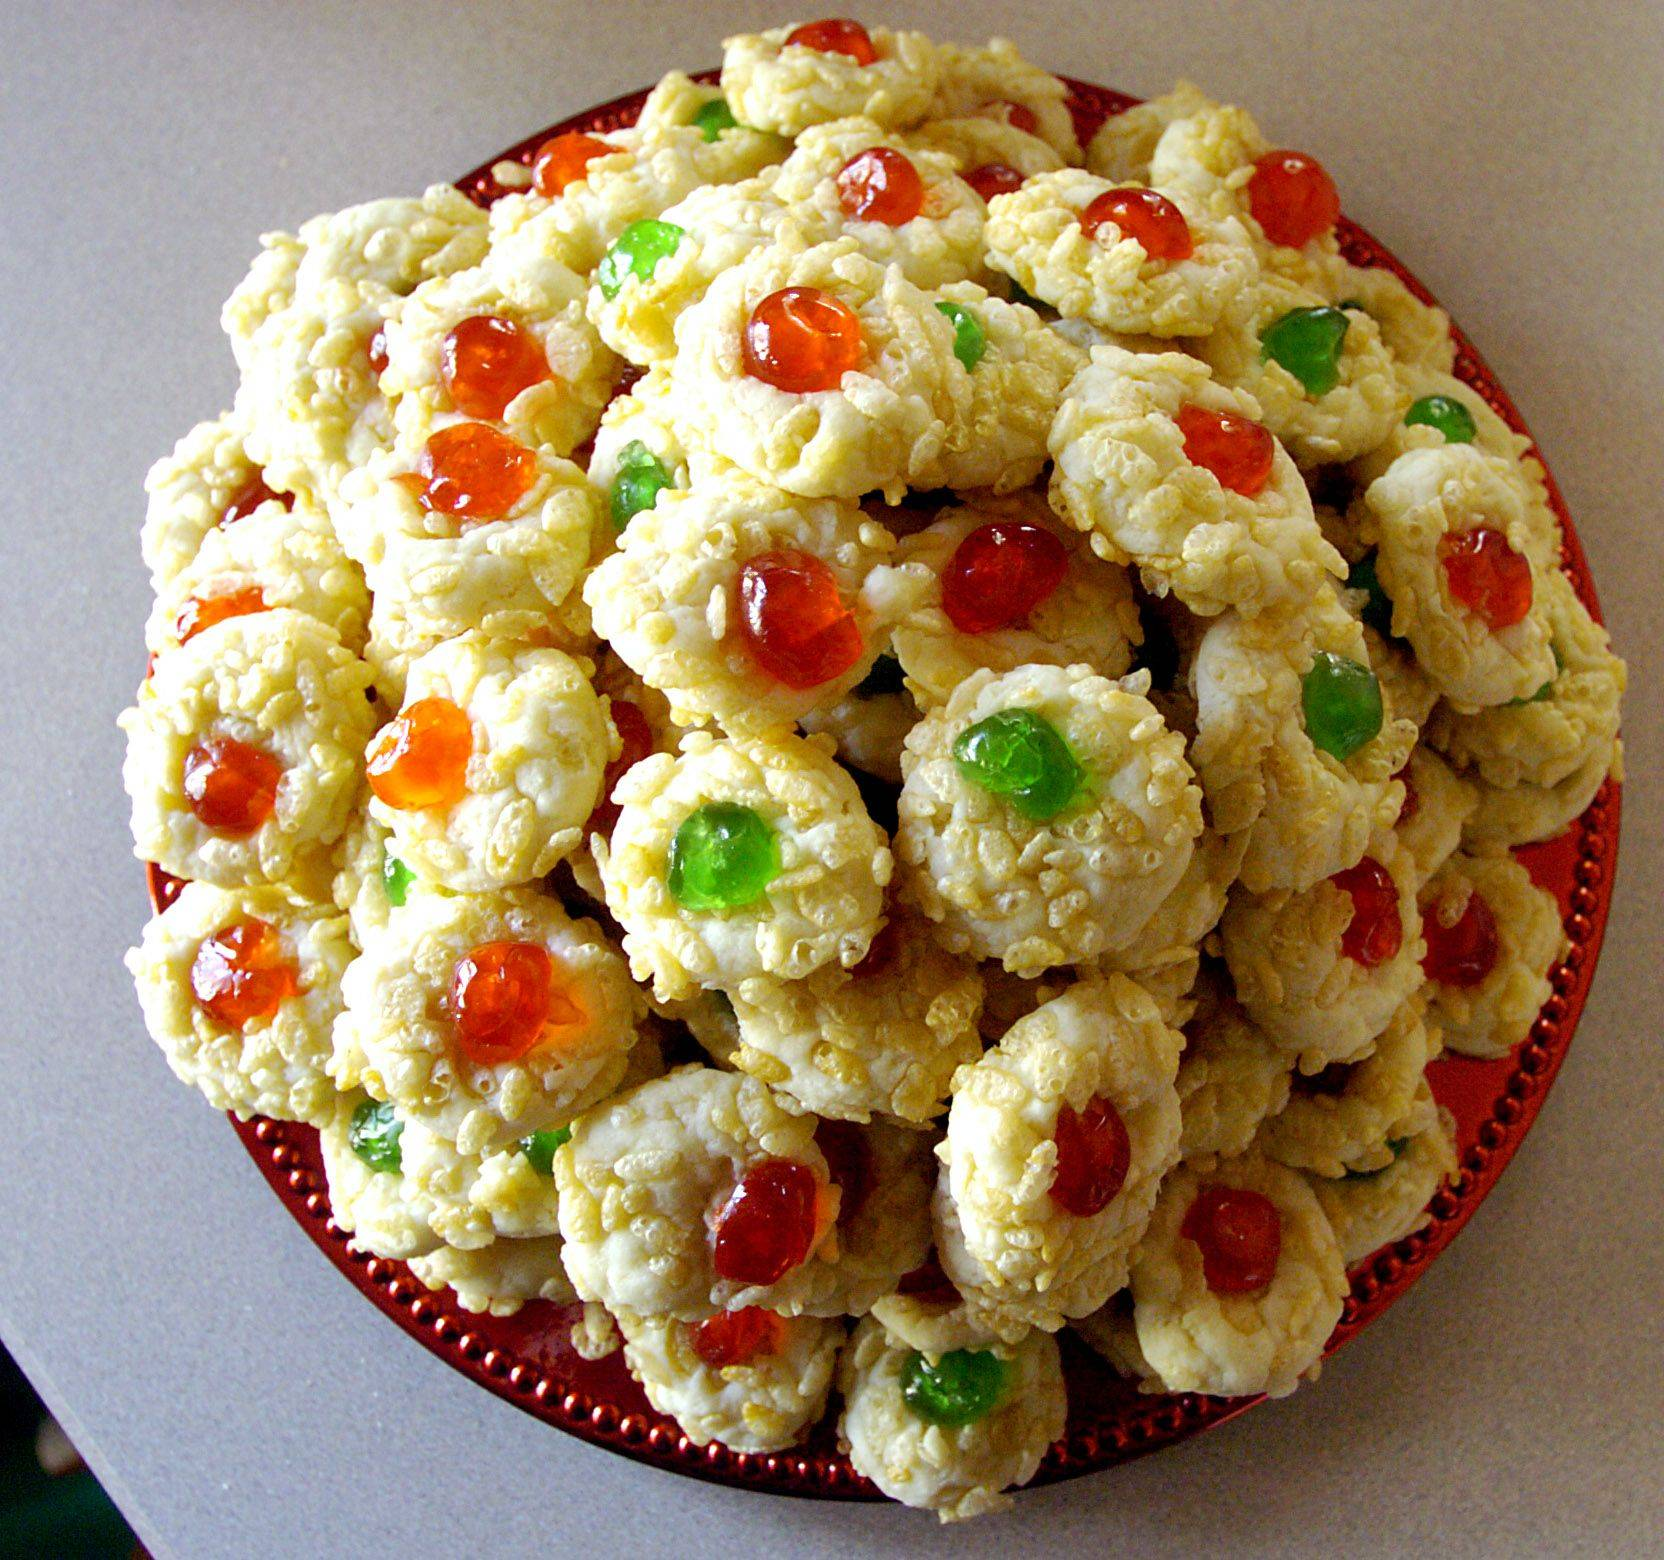 Cream Cheese Dainties from Kathy Lee of Elk Grove Village are a holiday favorite.